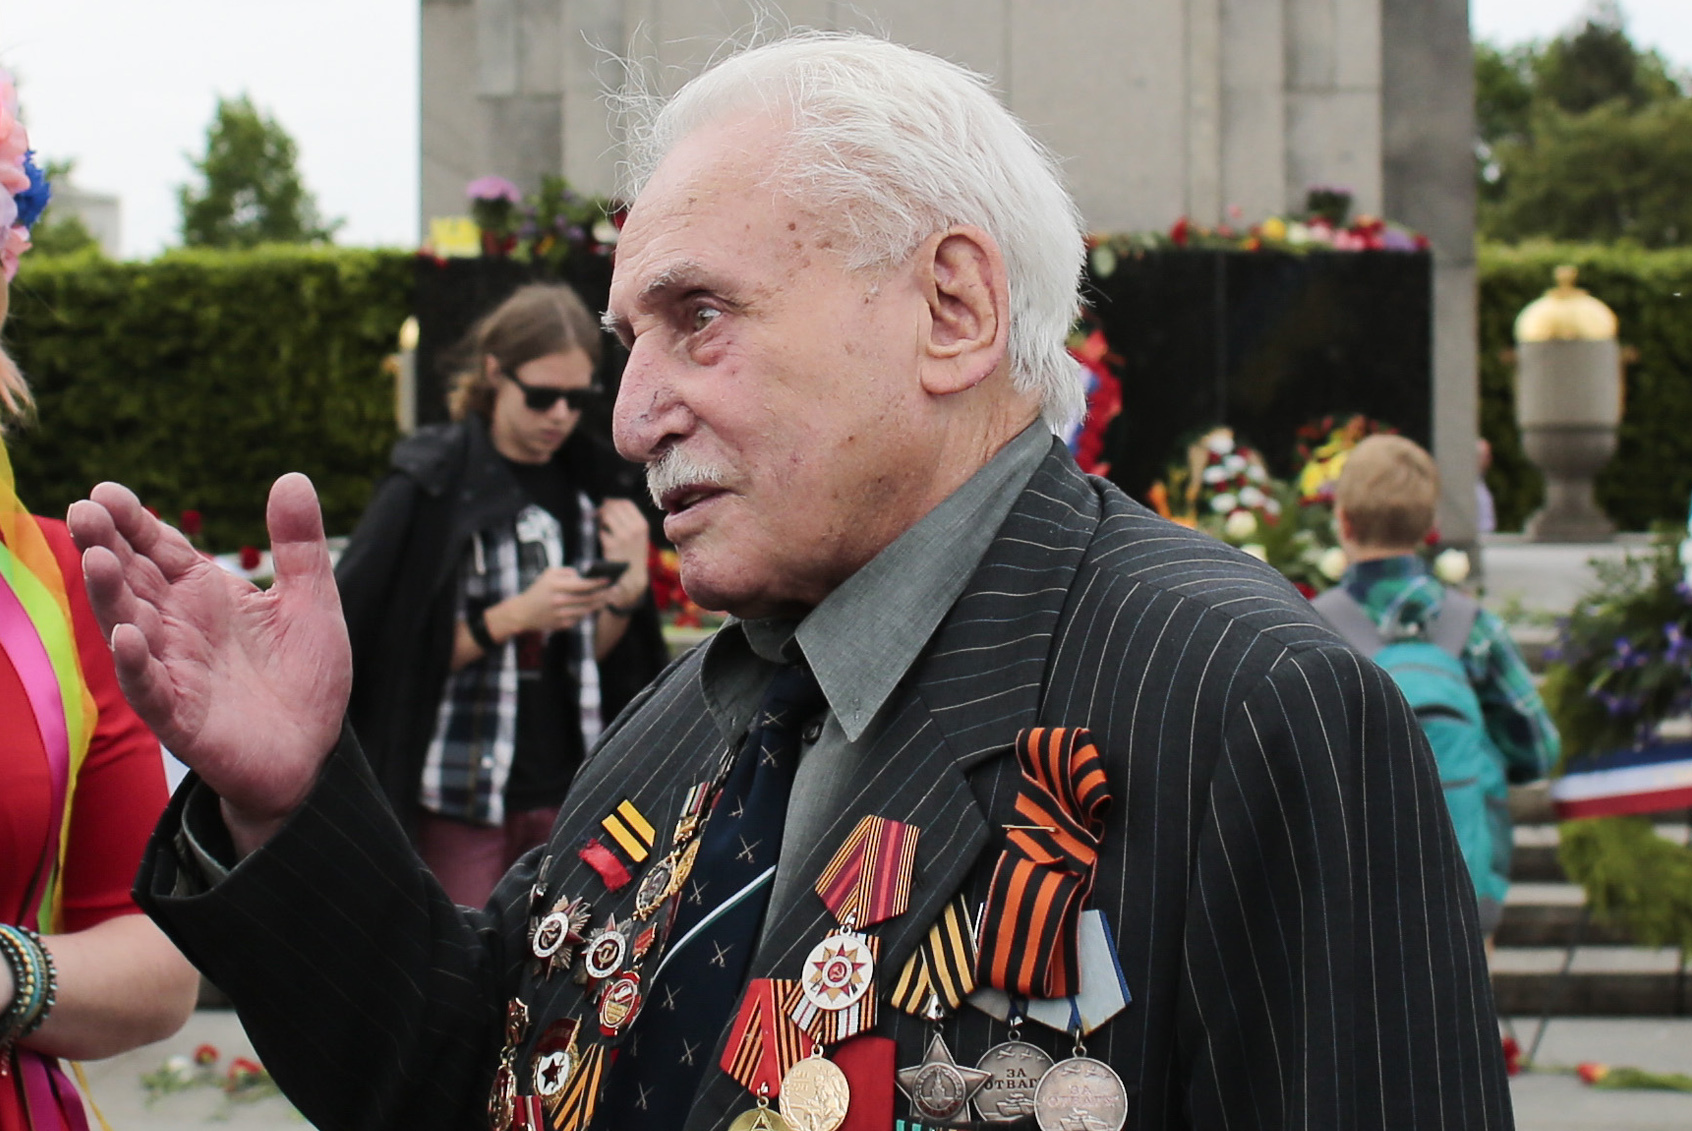 In this Friday, May 8, 2015 file photo, Soviet war veteran David Dushman, 92, center, speaks to people holding Ukrainian flags as he attends a wreath laying ceremony at the Russian War Memorial in the Tiergarten district of Berlin, Germany. Dushman, the last surviving Allied soldier involved in the liberation of Auschwitz, has died. The Jewish Community of Munich and Upper Bavaria said Sunday, June 6, 2021 that Dushman had died a day earlier in a Munich hospital at the age of 98. As young Red Army soldier, Dushman flattened the forbidding fence around the notorious Nazi death camp with his tank on Jan. 27, 1945. (AP Photo/Markus Schreiber, File)